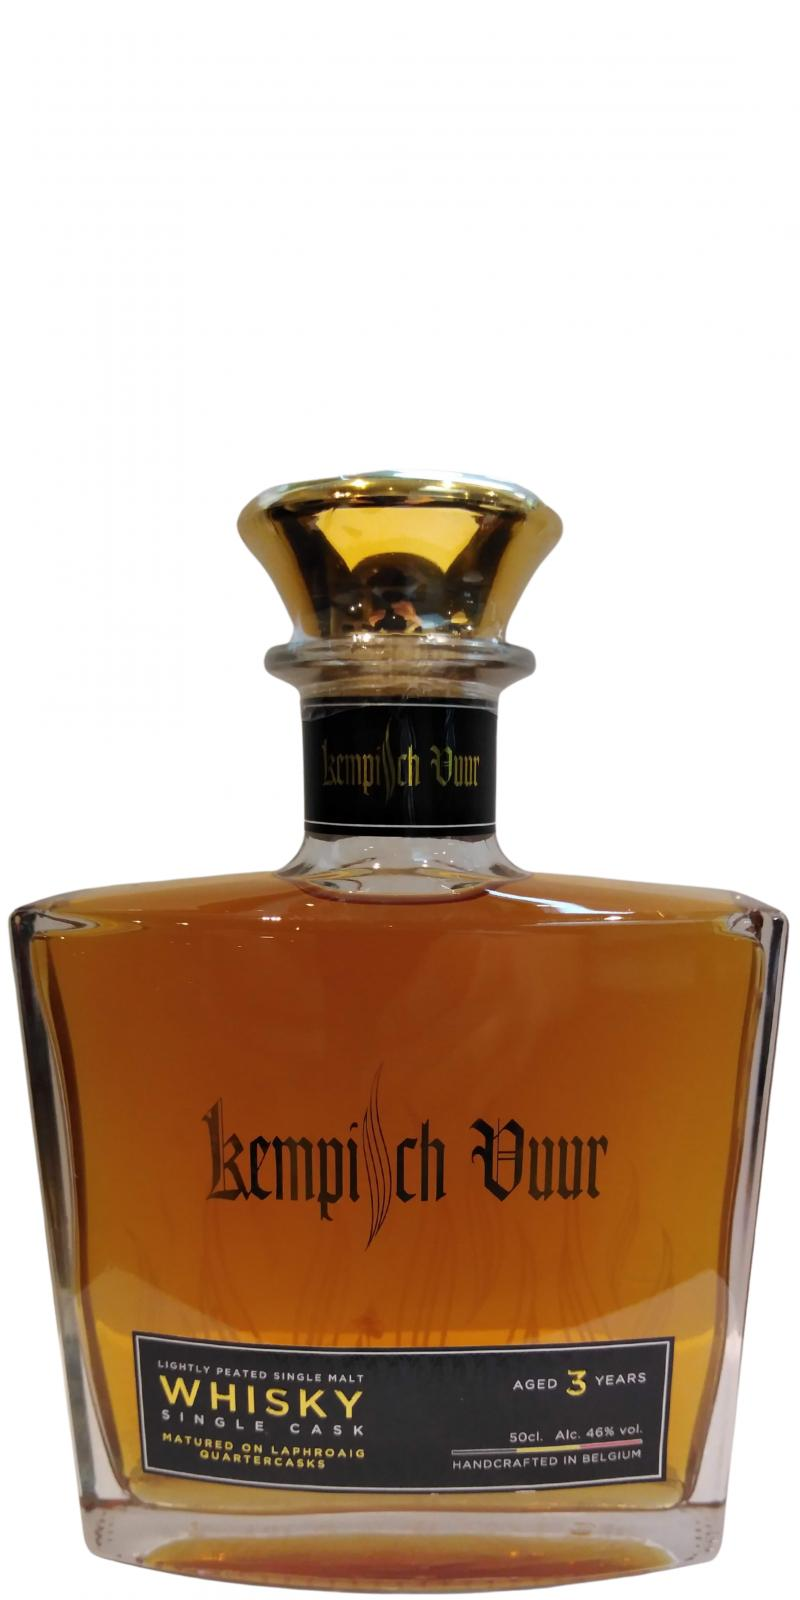 Kempisch Vuur 03-year-old